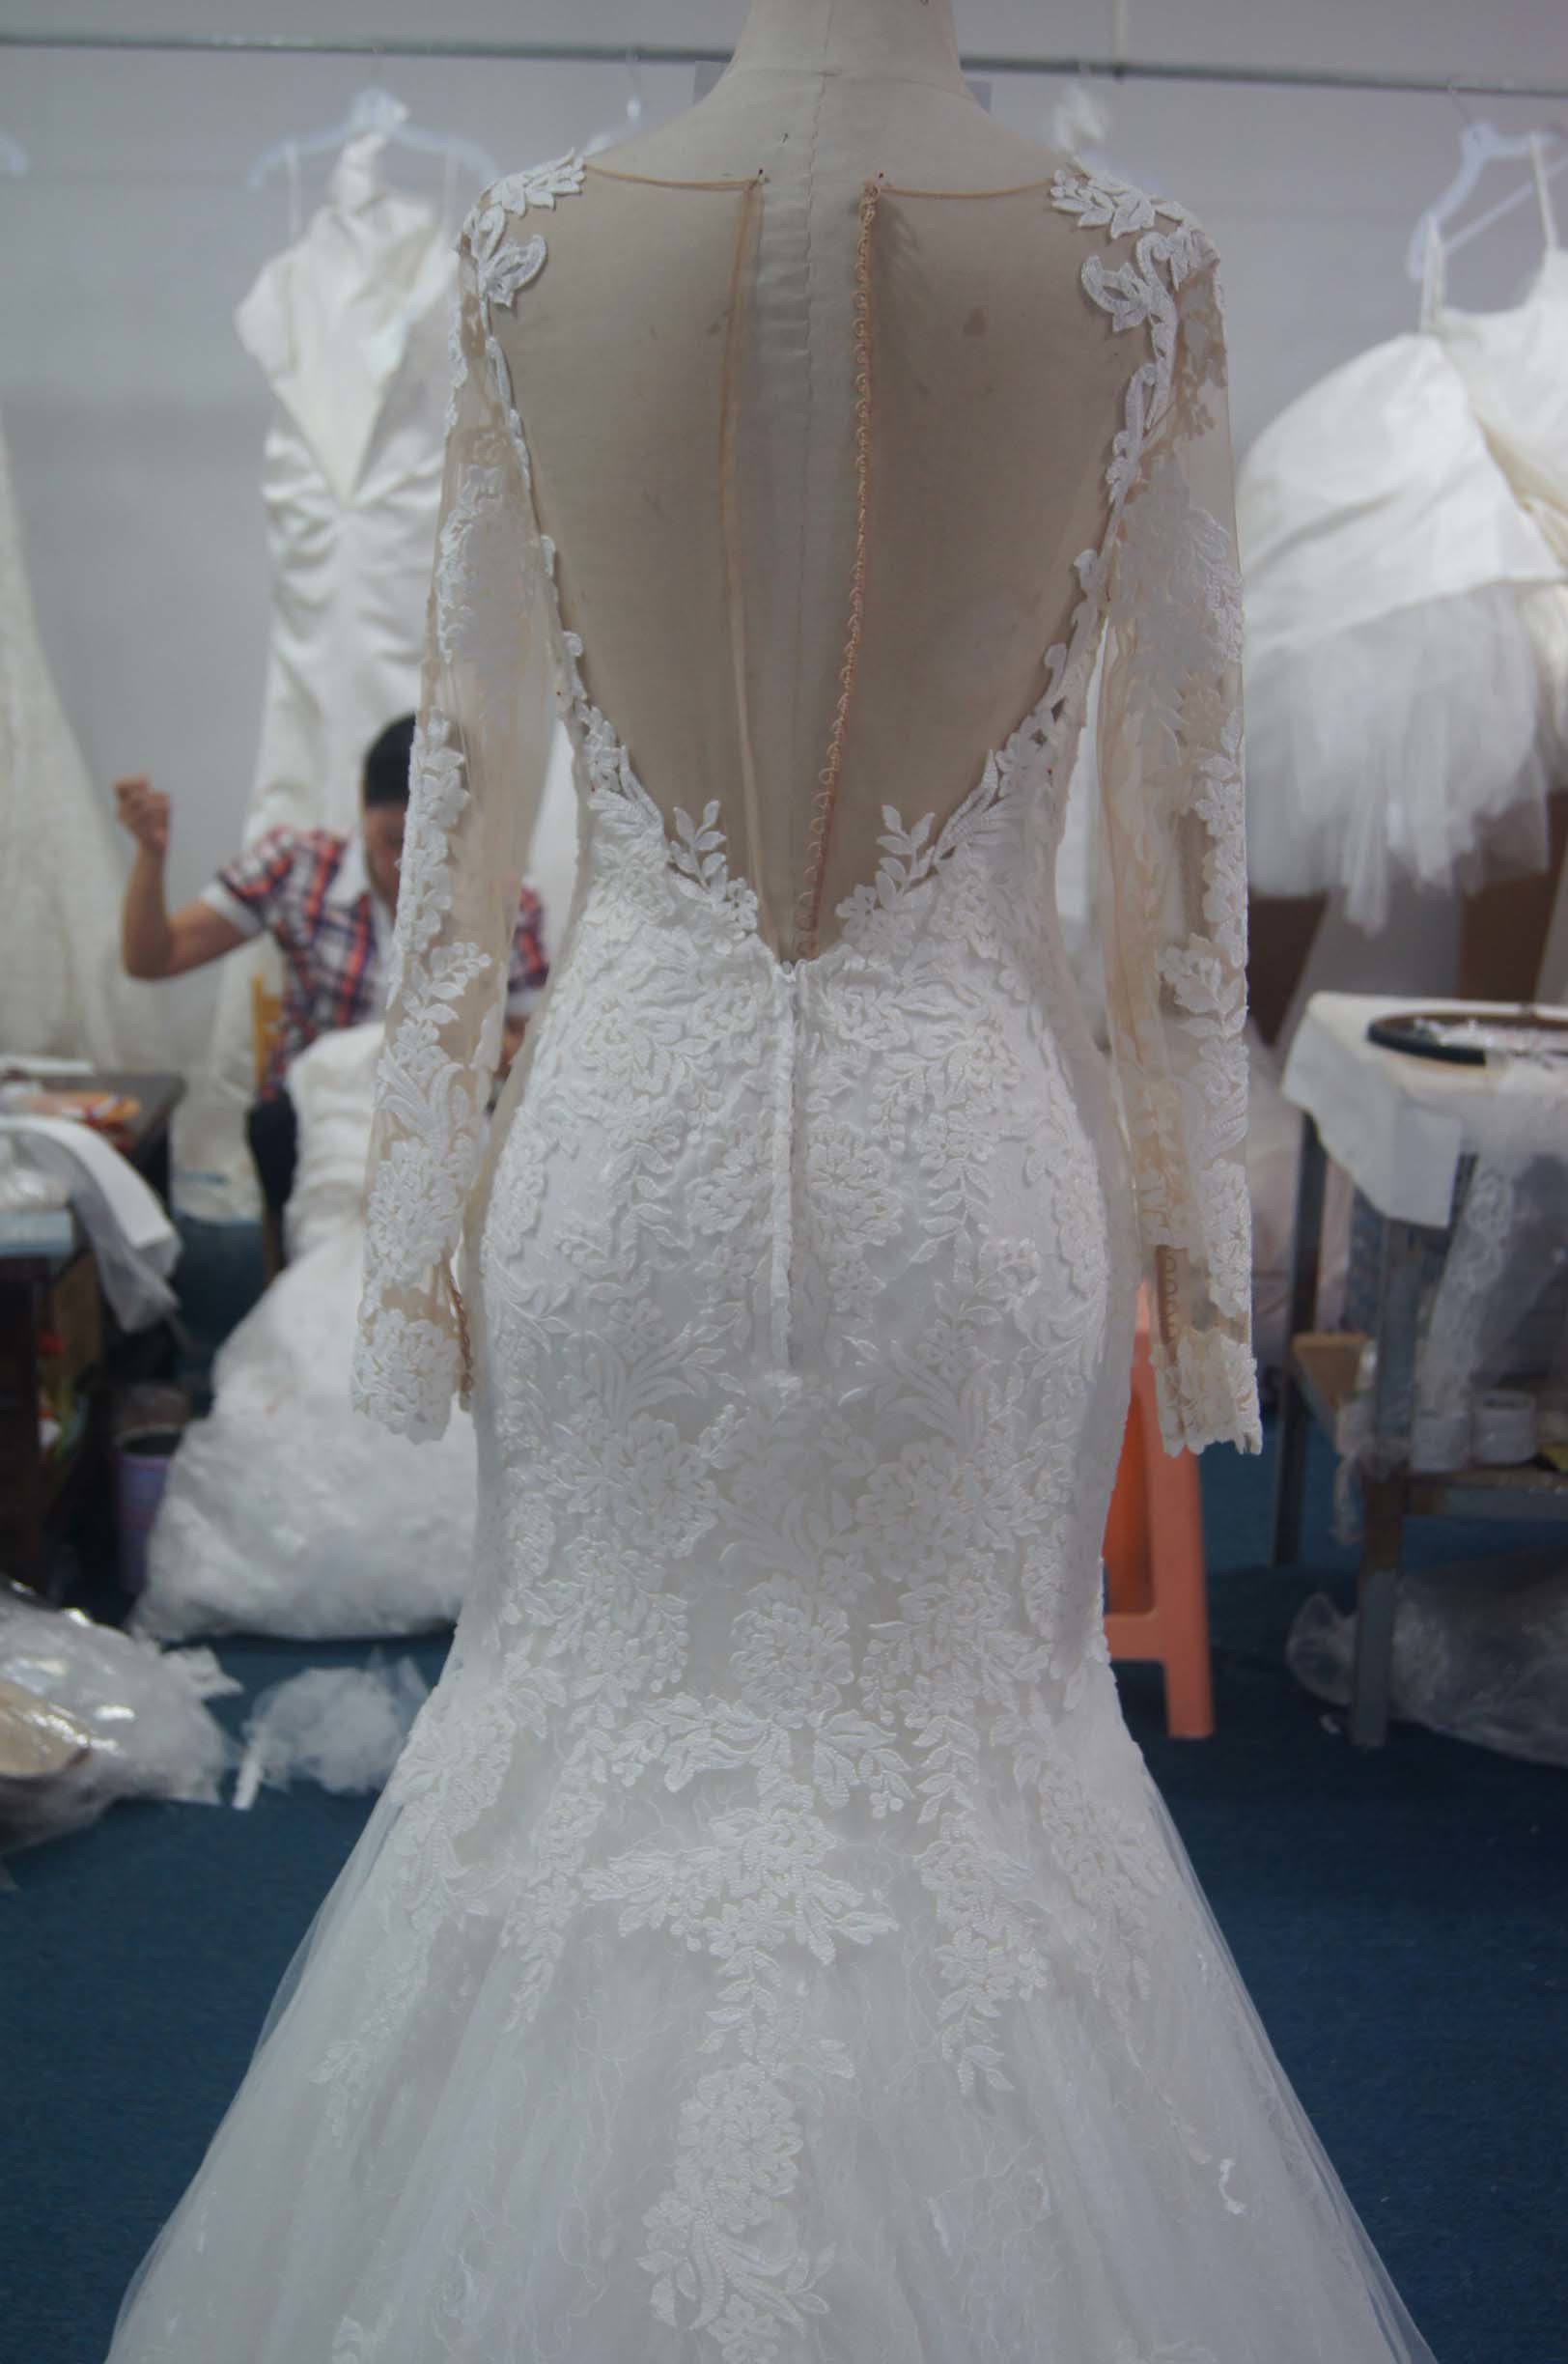 New Duchess Bridal Wedding Gown with Chanpel Train